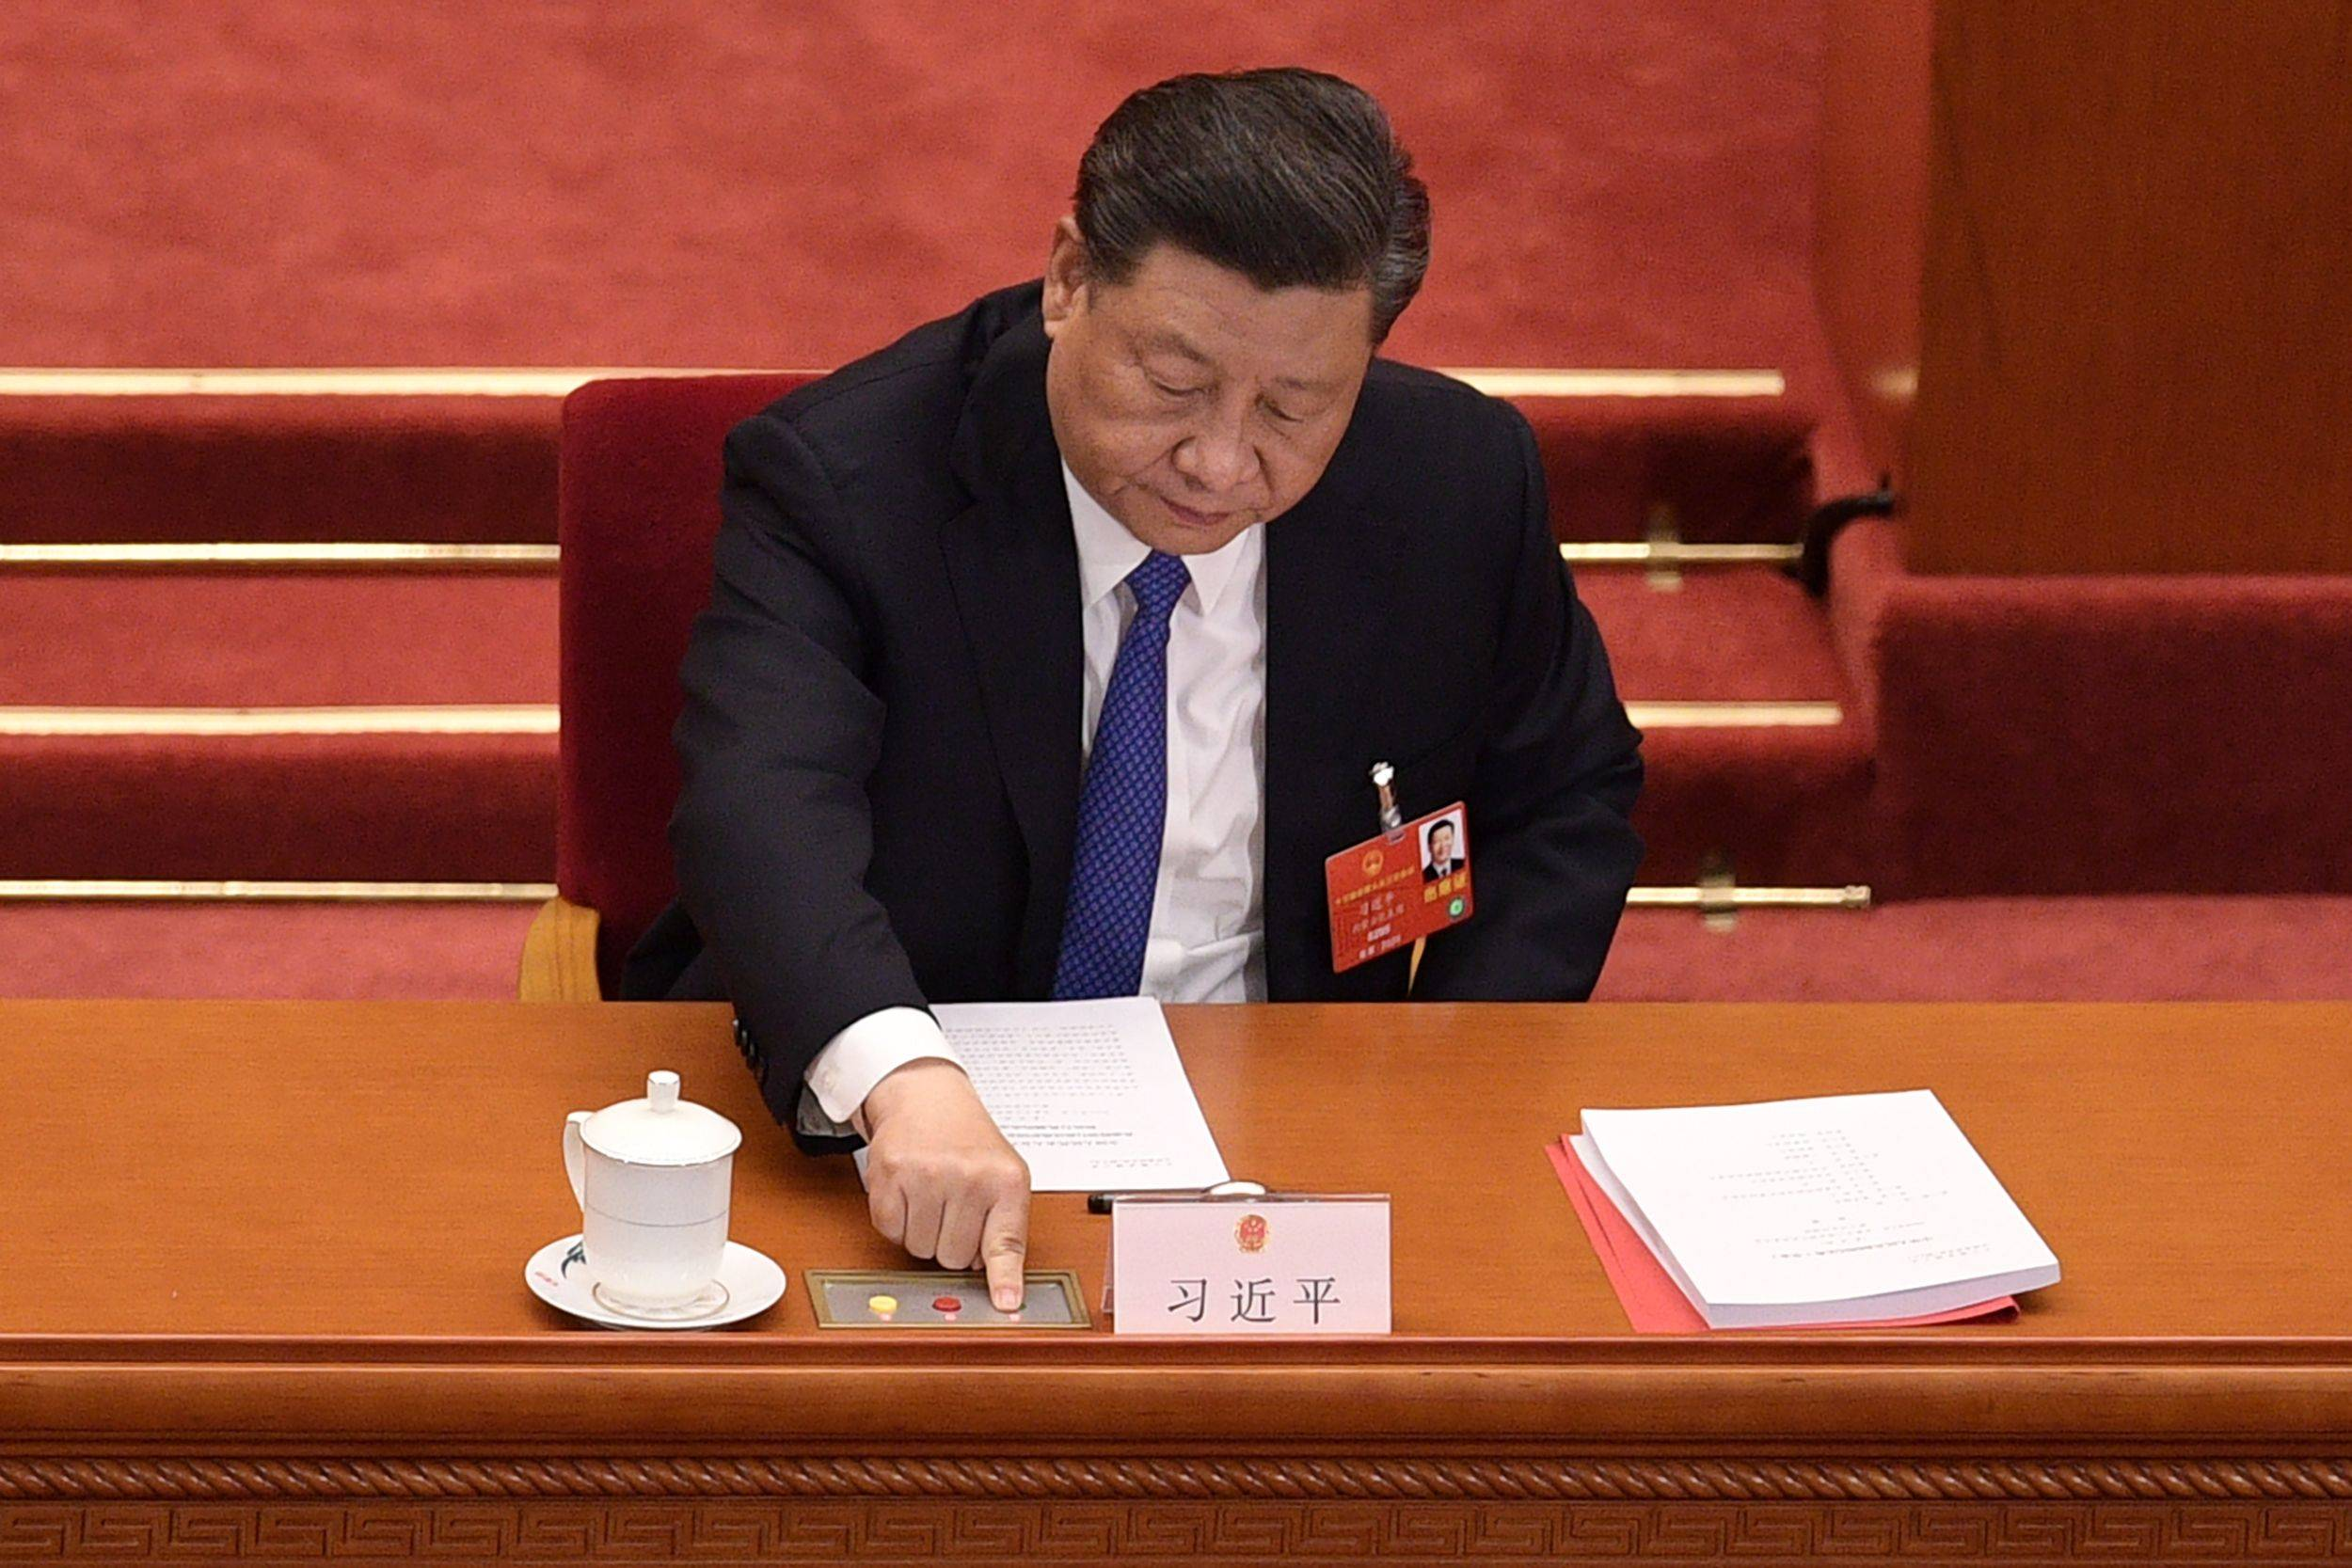 The leadership under Xi Jinping believes China is now strong enough that it can forcefully assert its agenda both at home and abroad because it has reached the point it can withstand whatever penalties come its way. | AFP-JIJI